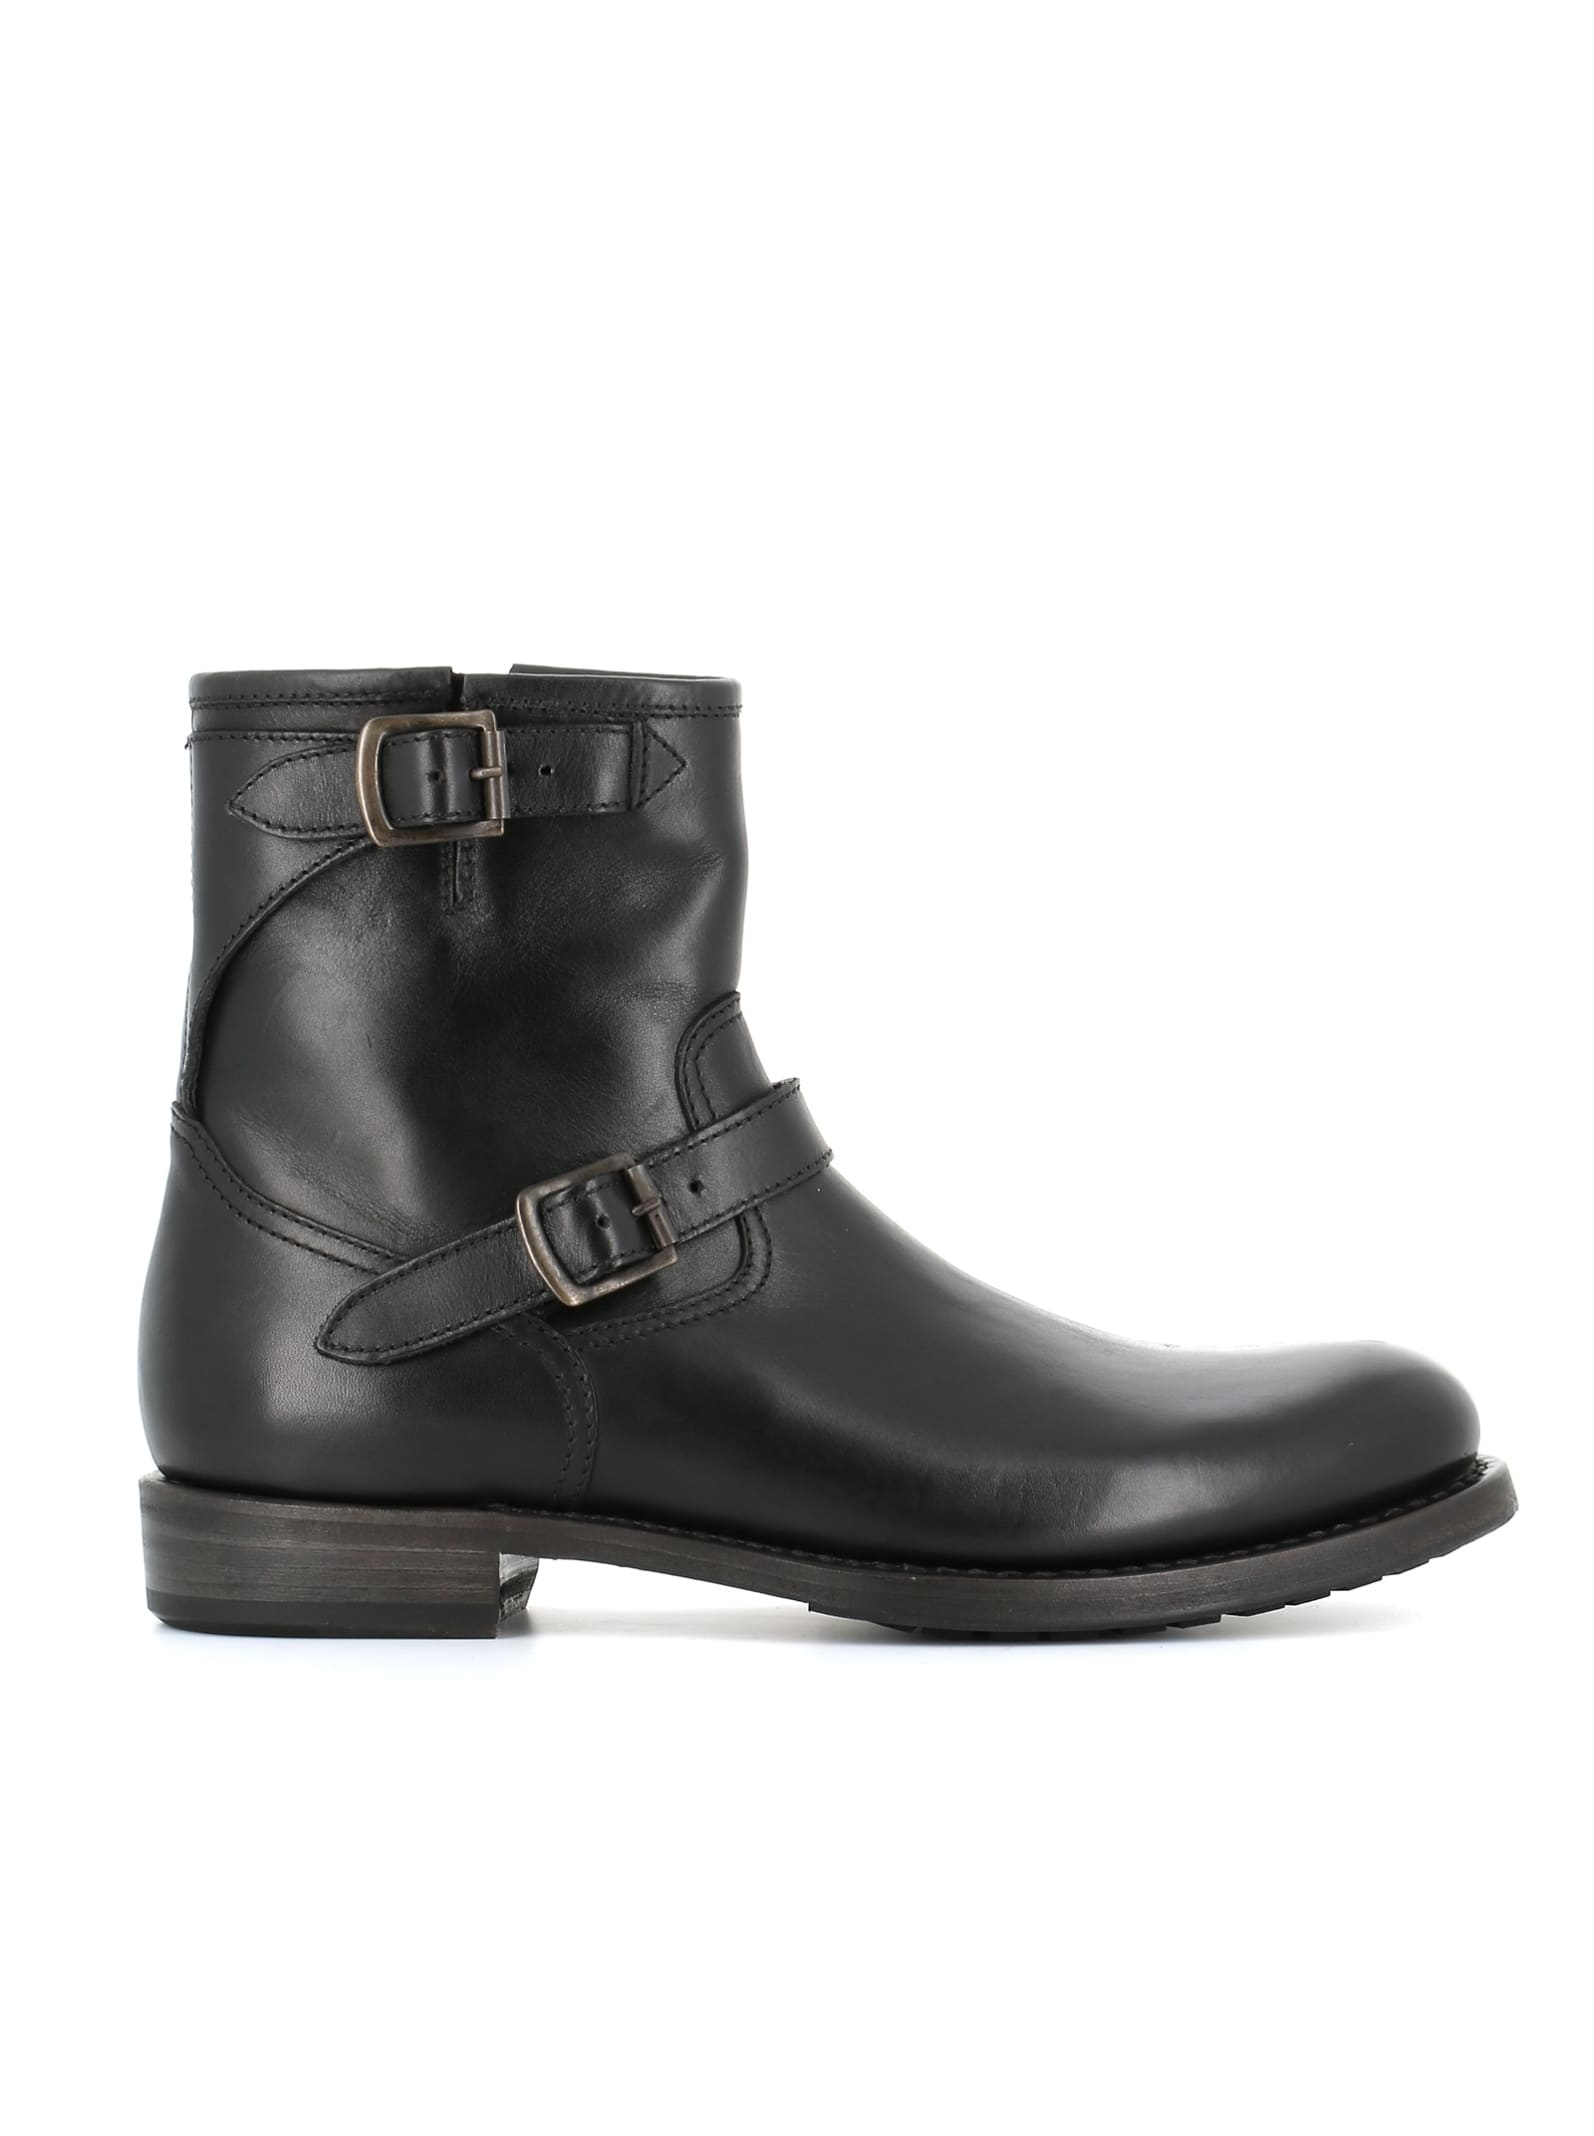 Project Twlv Ankle Boot Lowrider